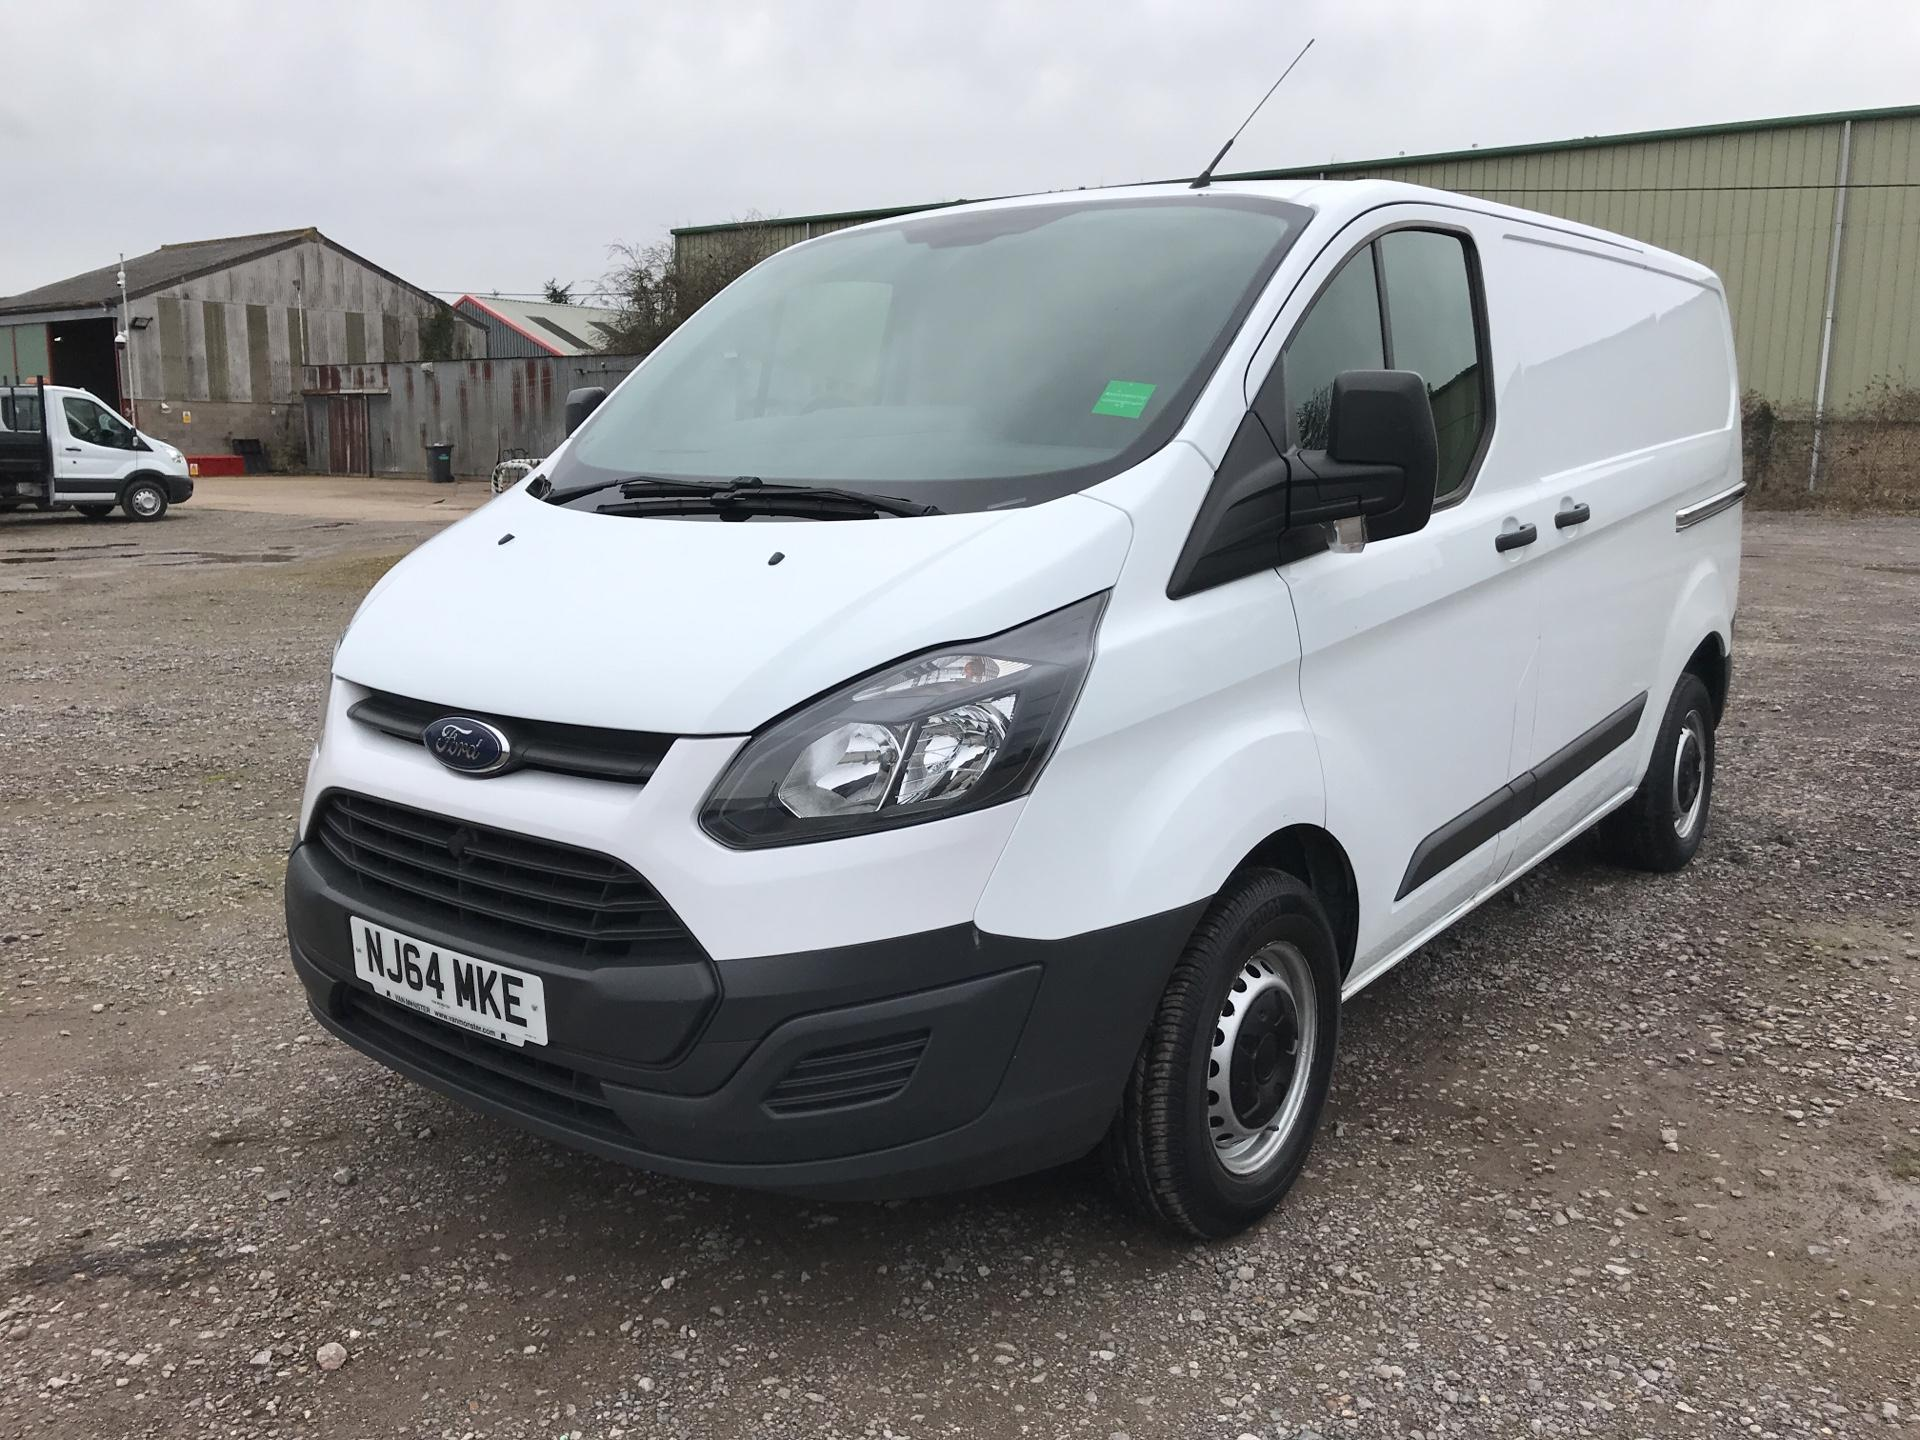 2014 Ford Transit Custom 290 L1 DIESEL FWD 2.2 TDCI 100PS LOW ROOF VAN EURO 5 (NJ64MKE) Image 7